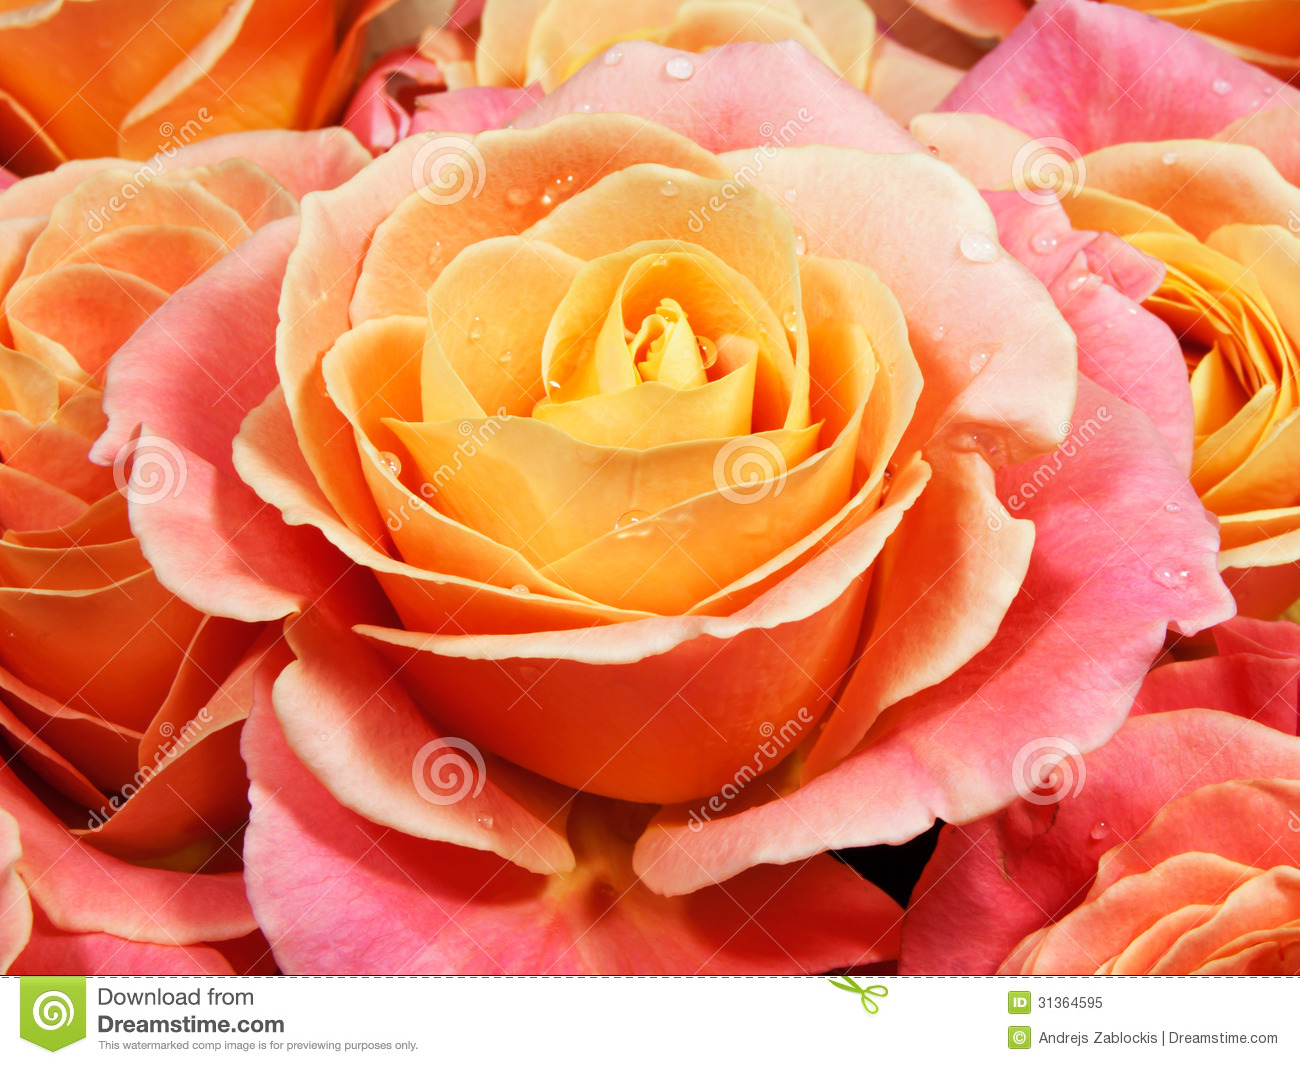 closeup colorful roses pink yellow orange royalty free stock photo image 31364595. Black Bedroom Furniture Sets. Home Design Ideas